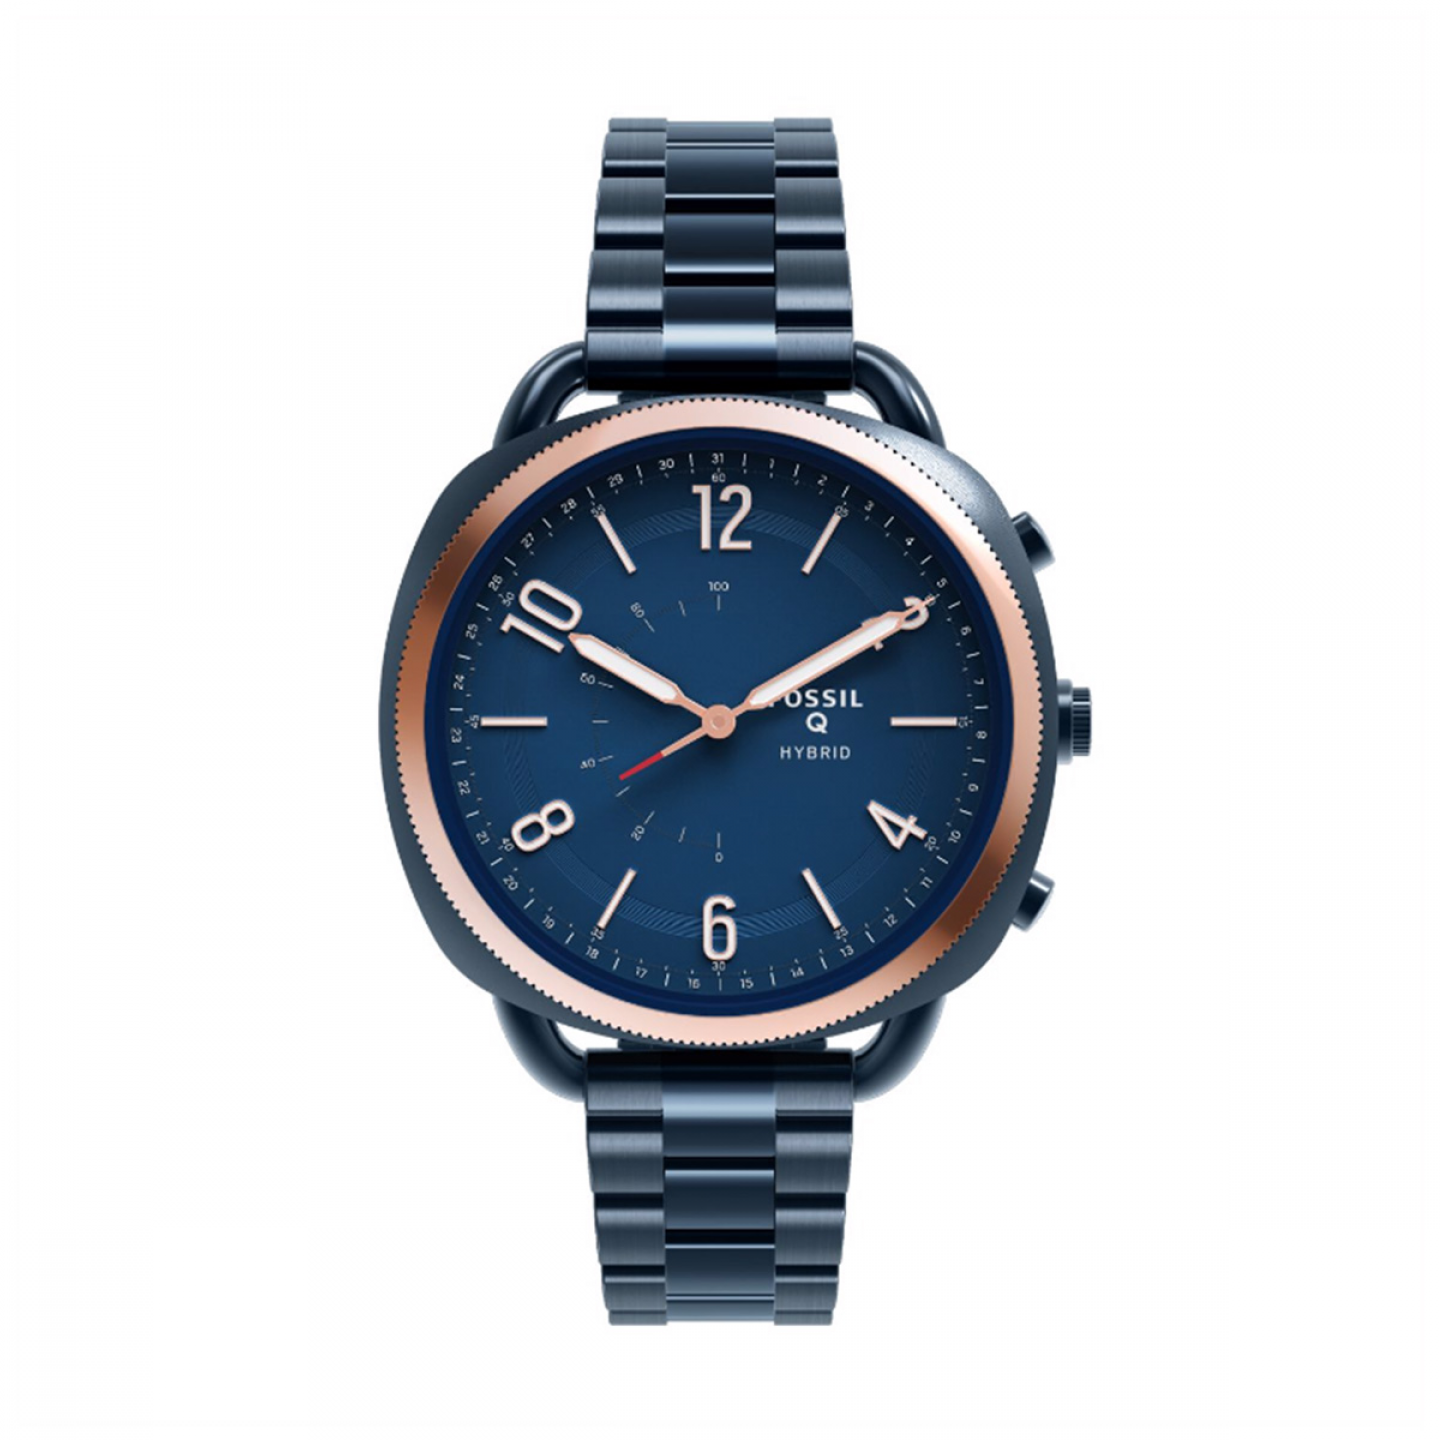 Relógio Inteligente FOSSIL Q Accomplice (Smartwatch)